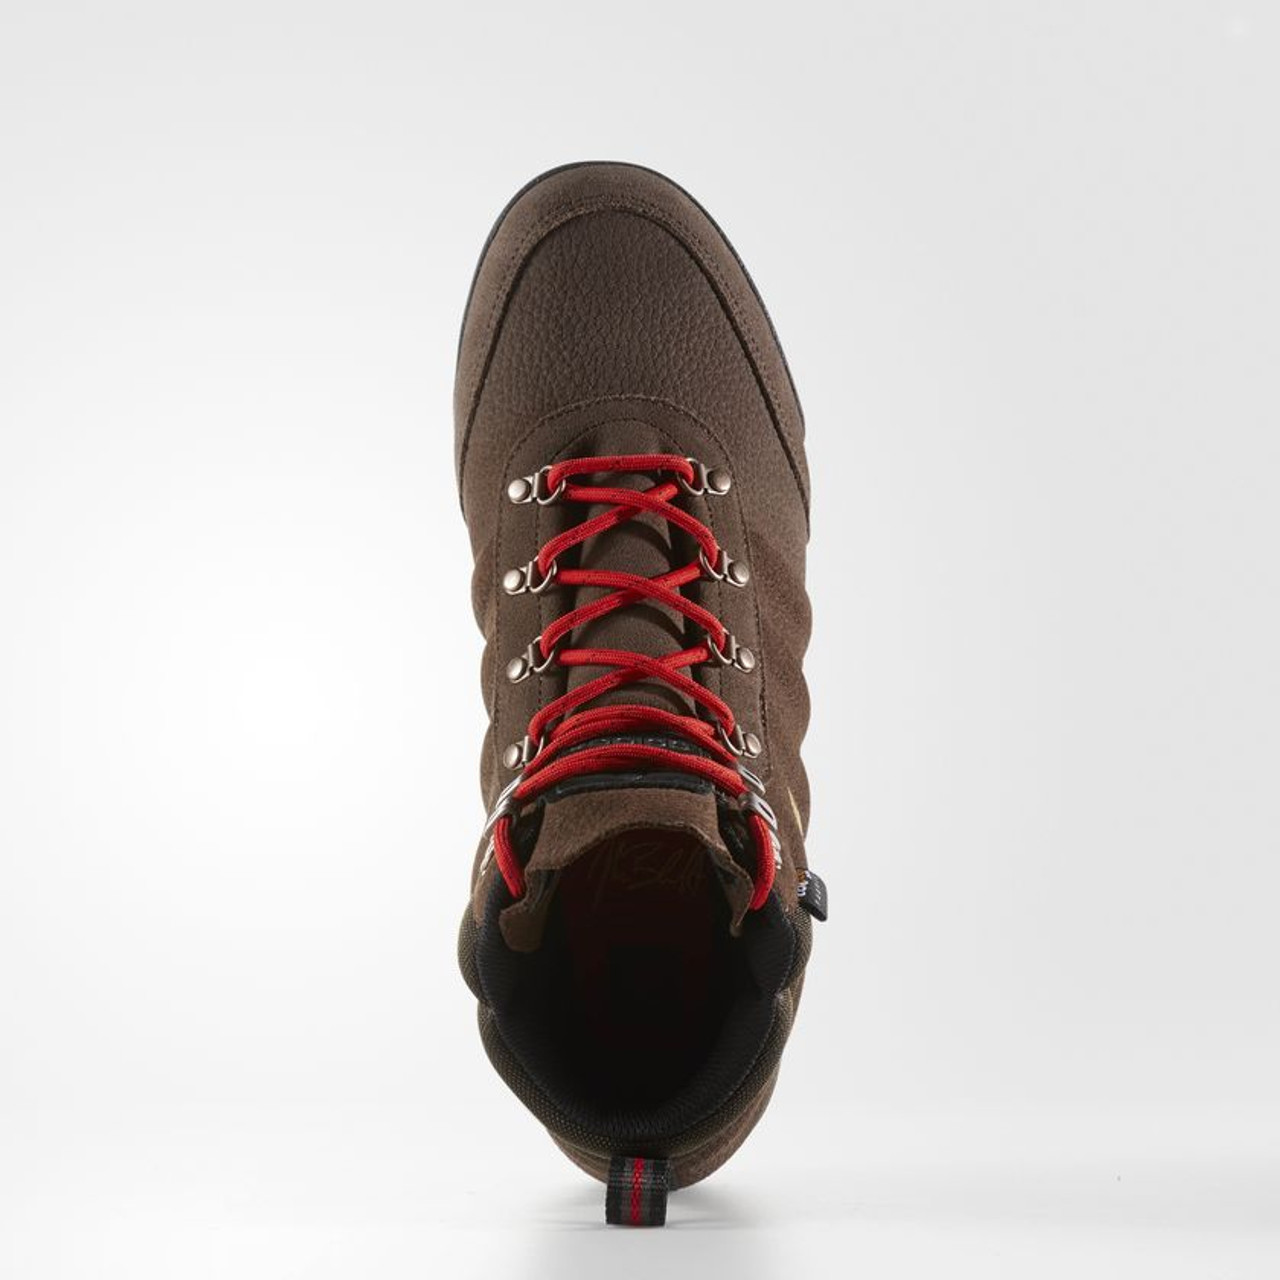 76c6d07f343 Adidas Jake Boot 2.0 Hiking Boots Mens Brown Scarlet